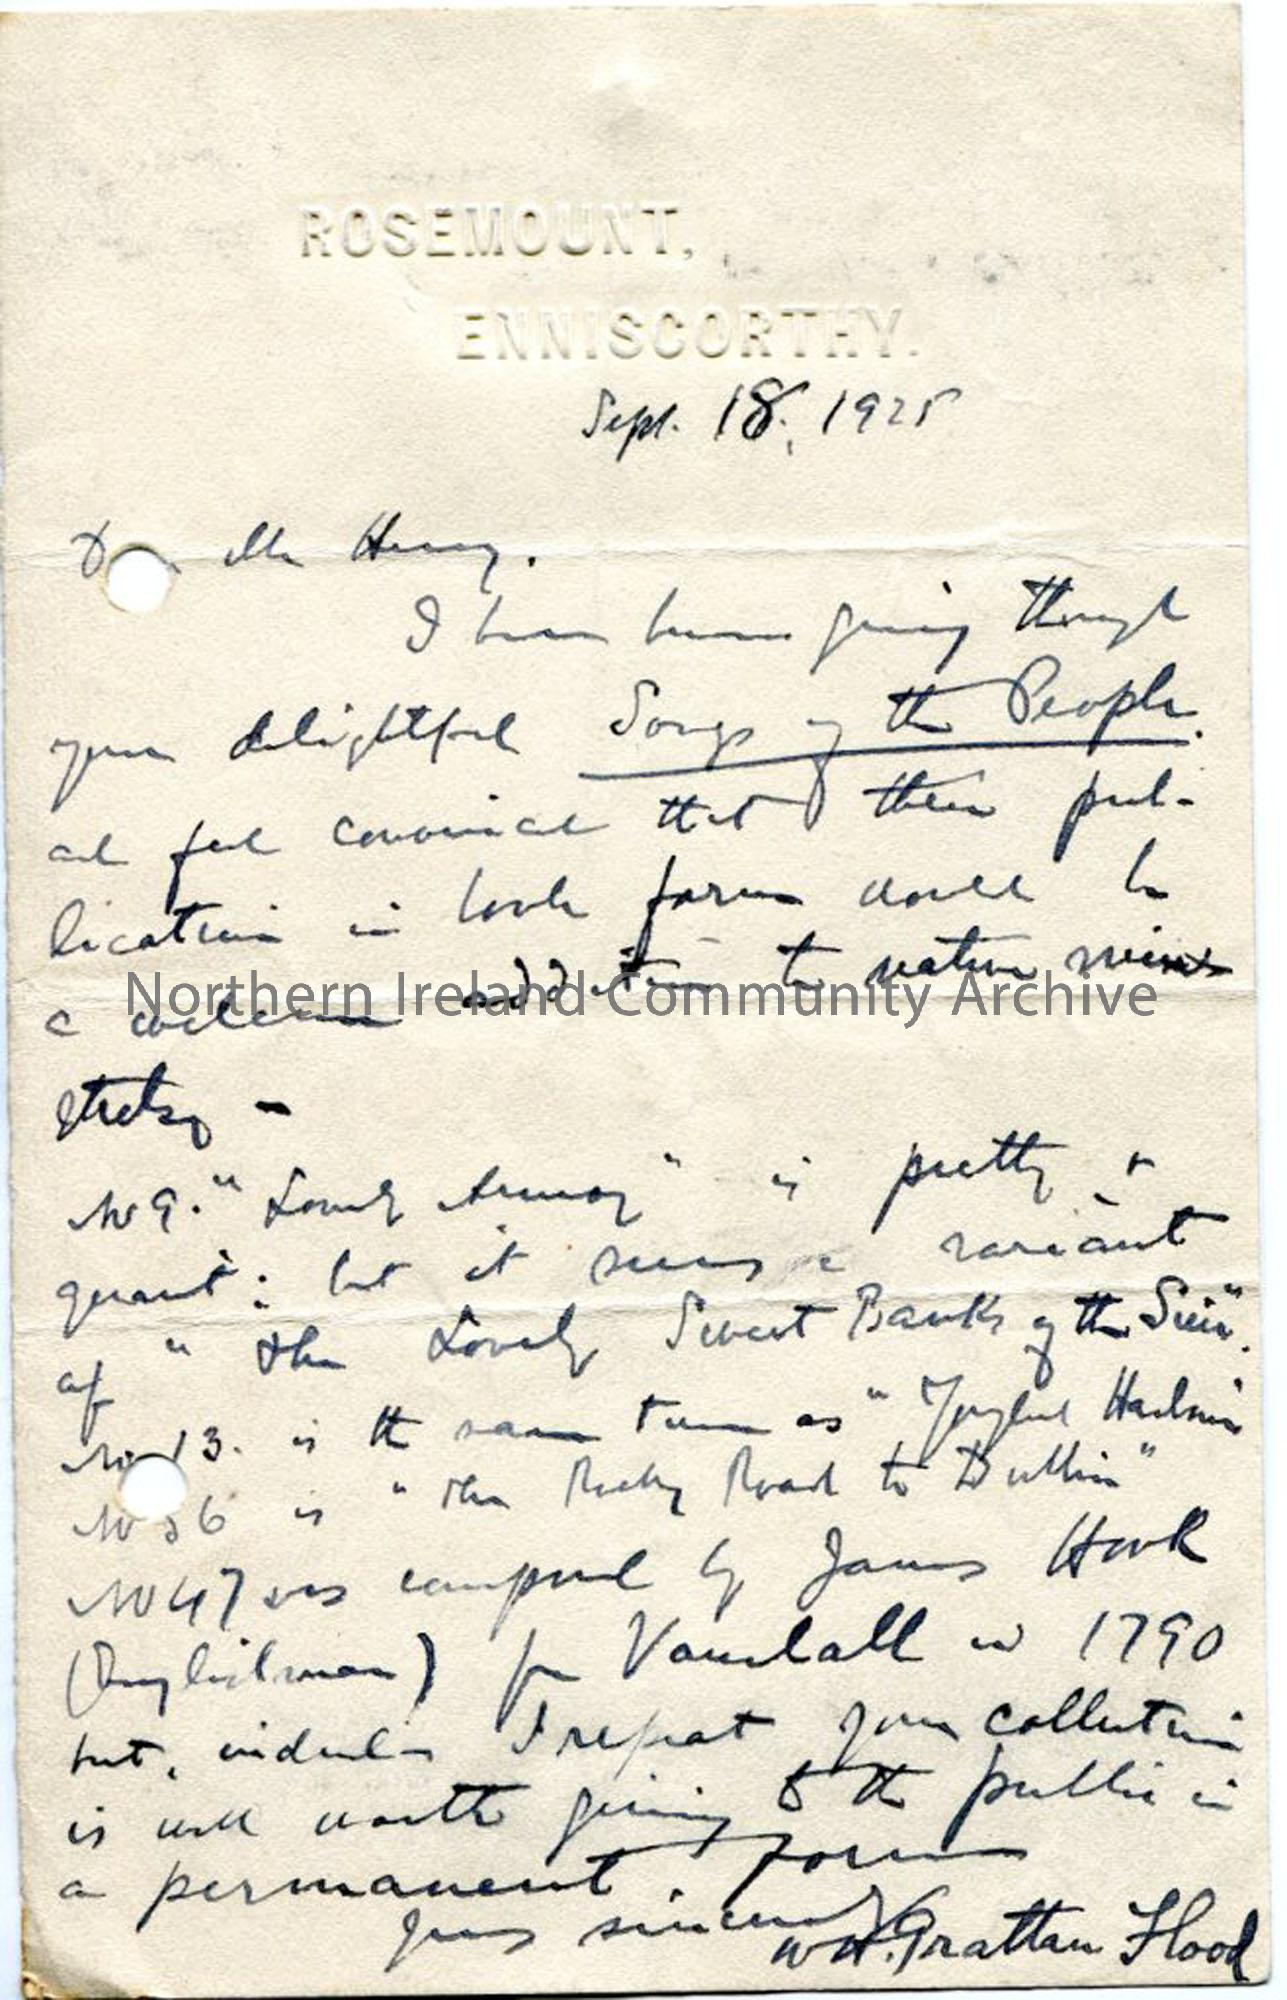 Letter from W H Grattan Flood, dated 18.9.1925